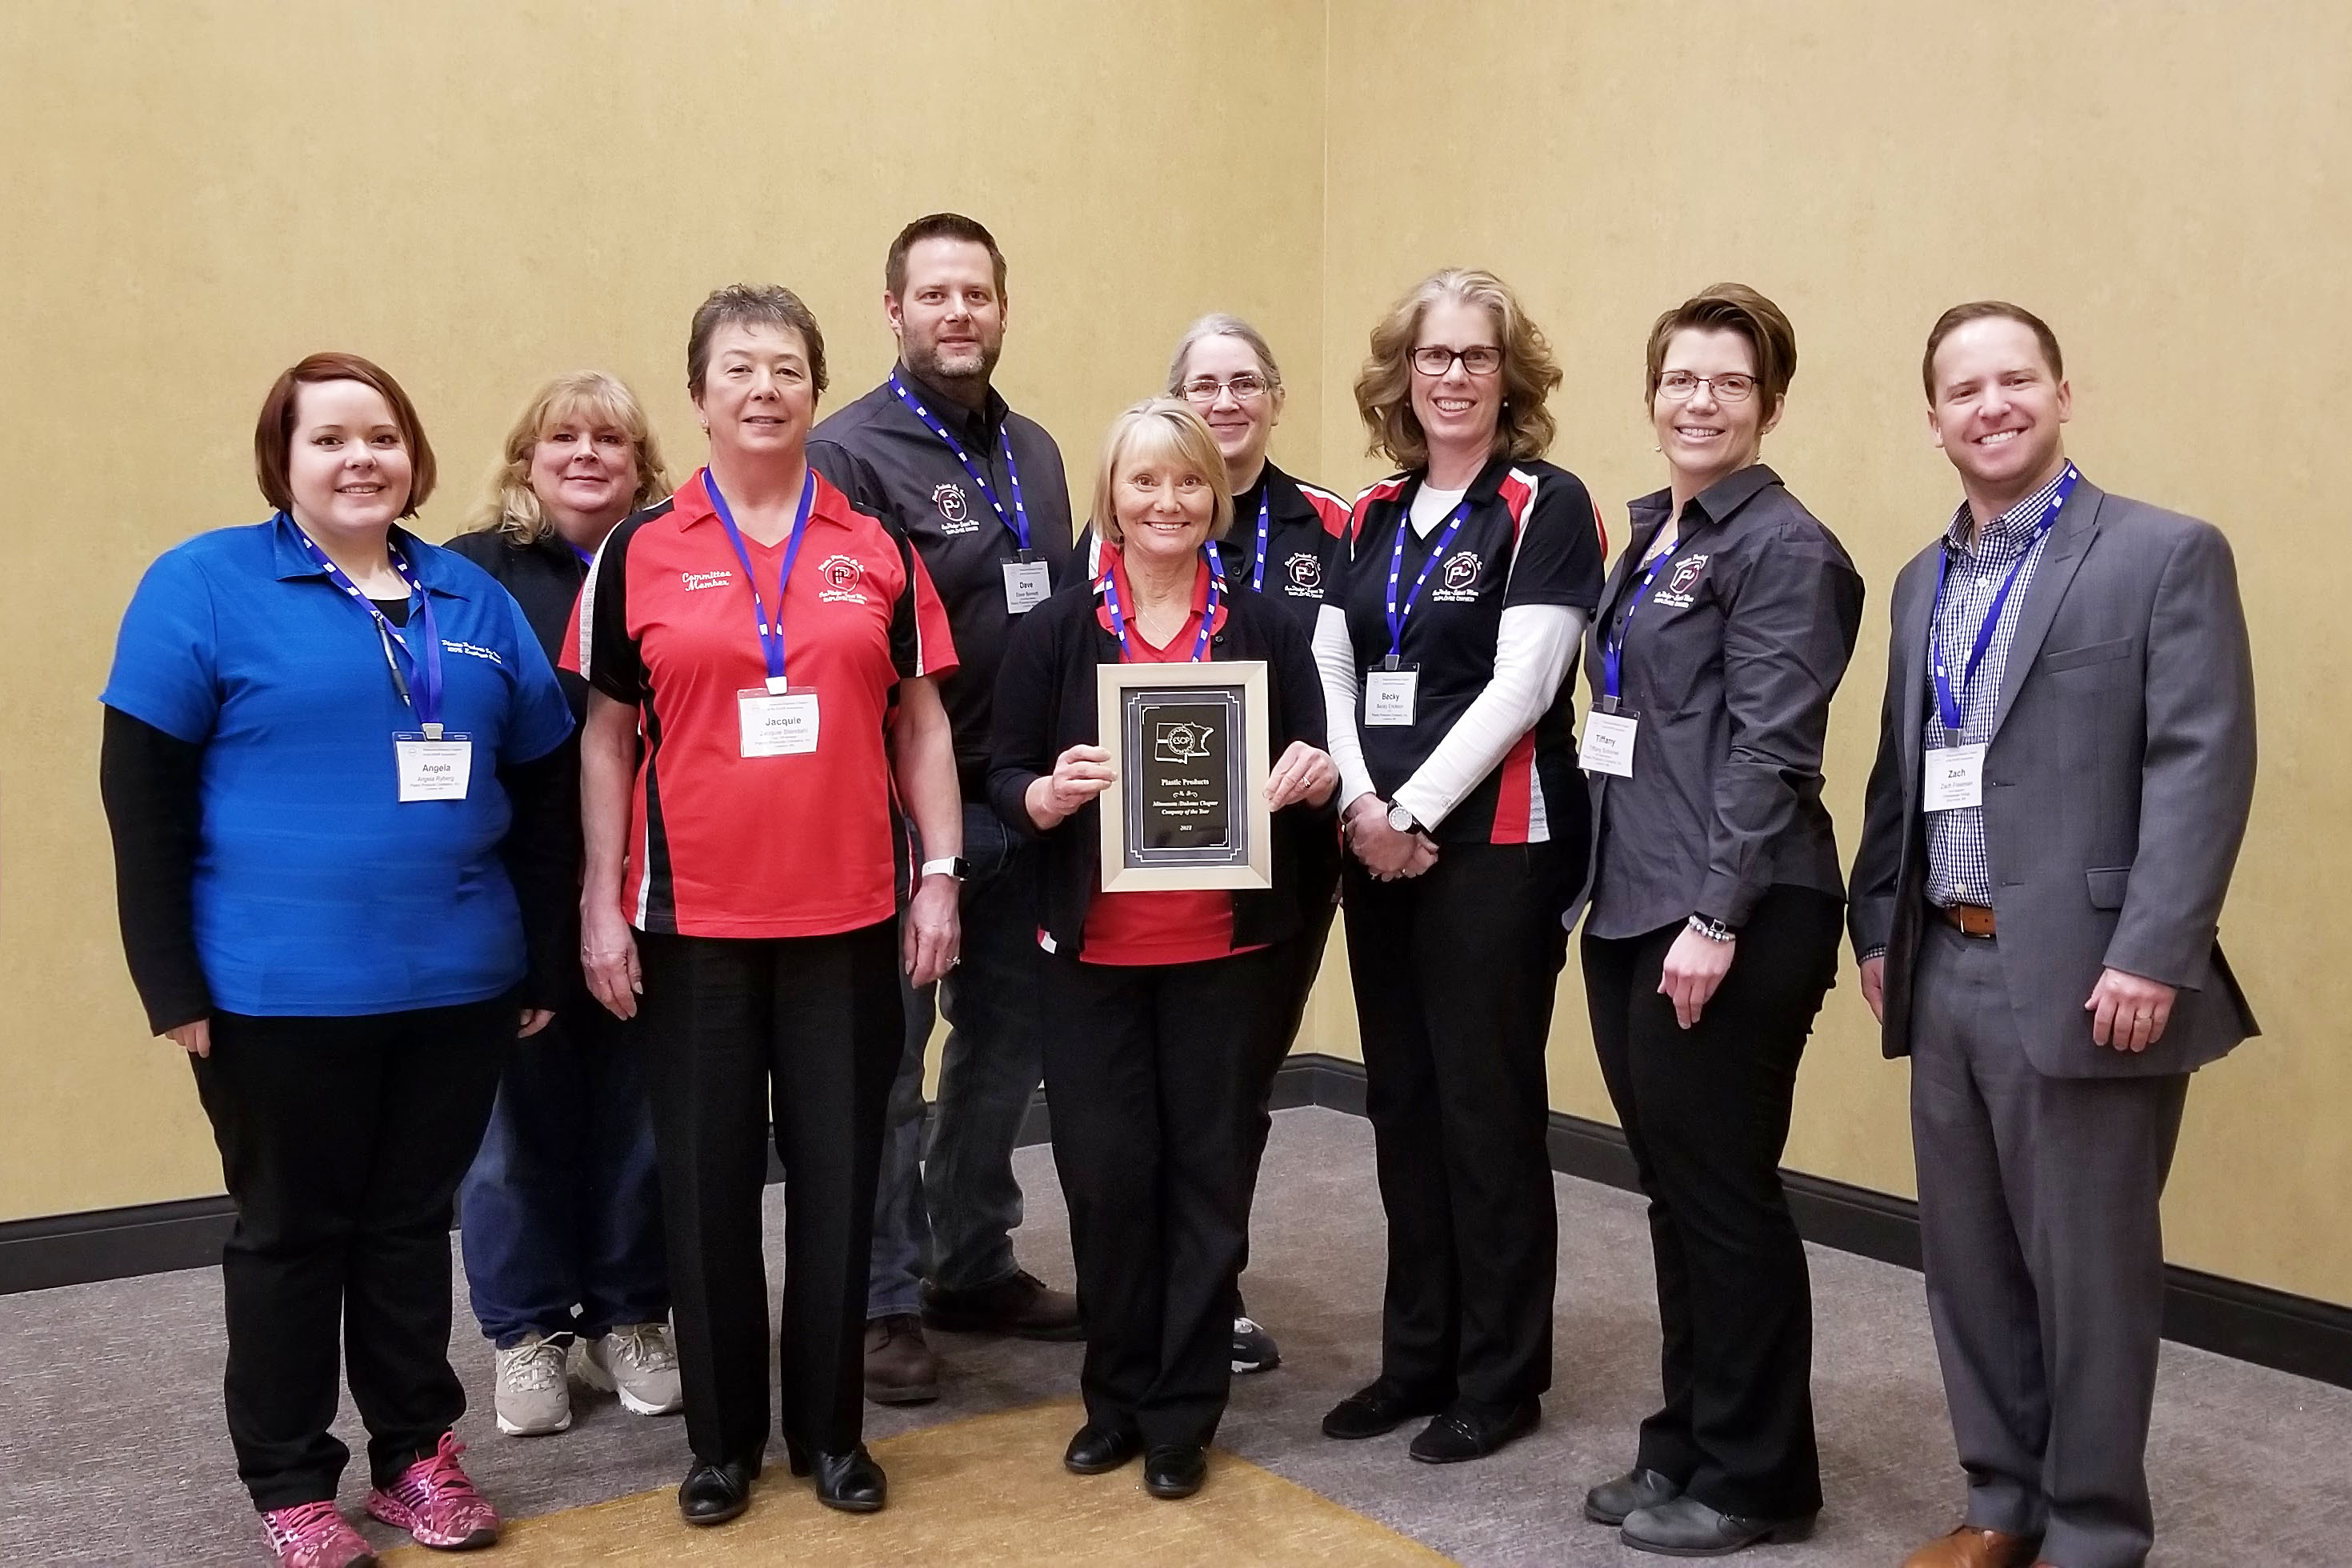 2018 MN/DAK Company of the Year